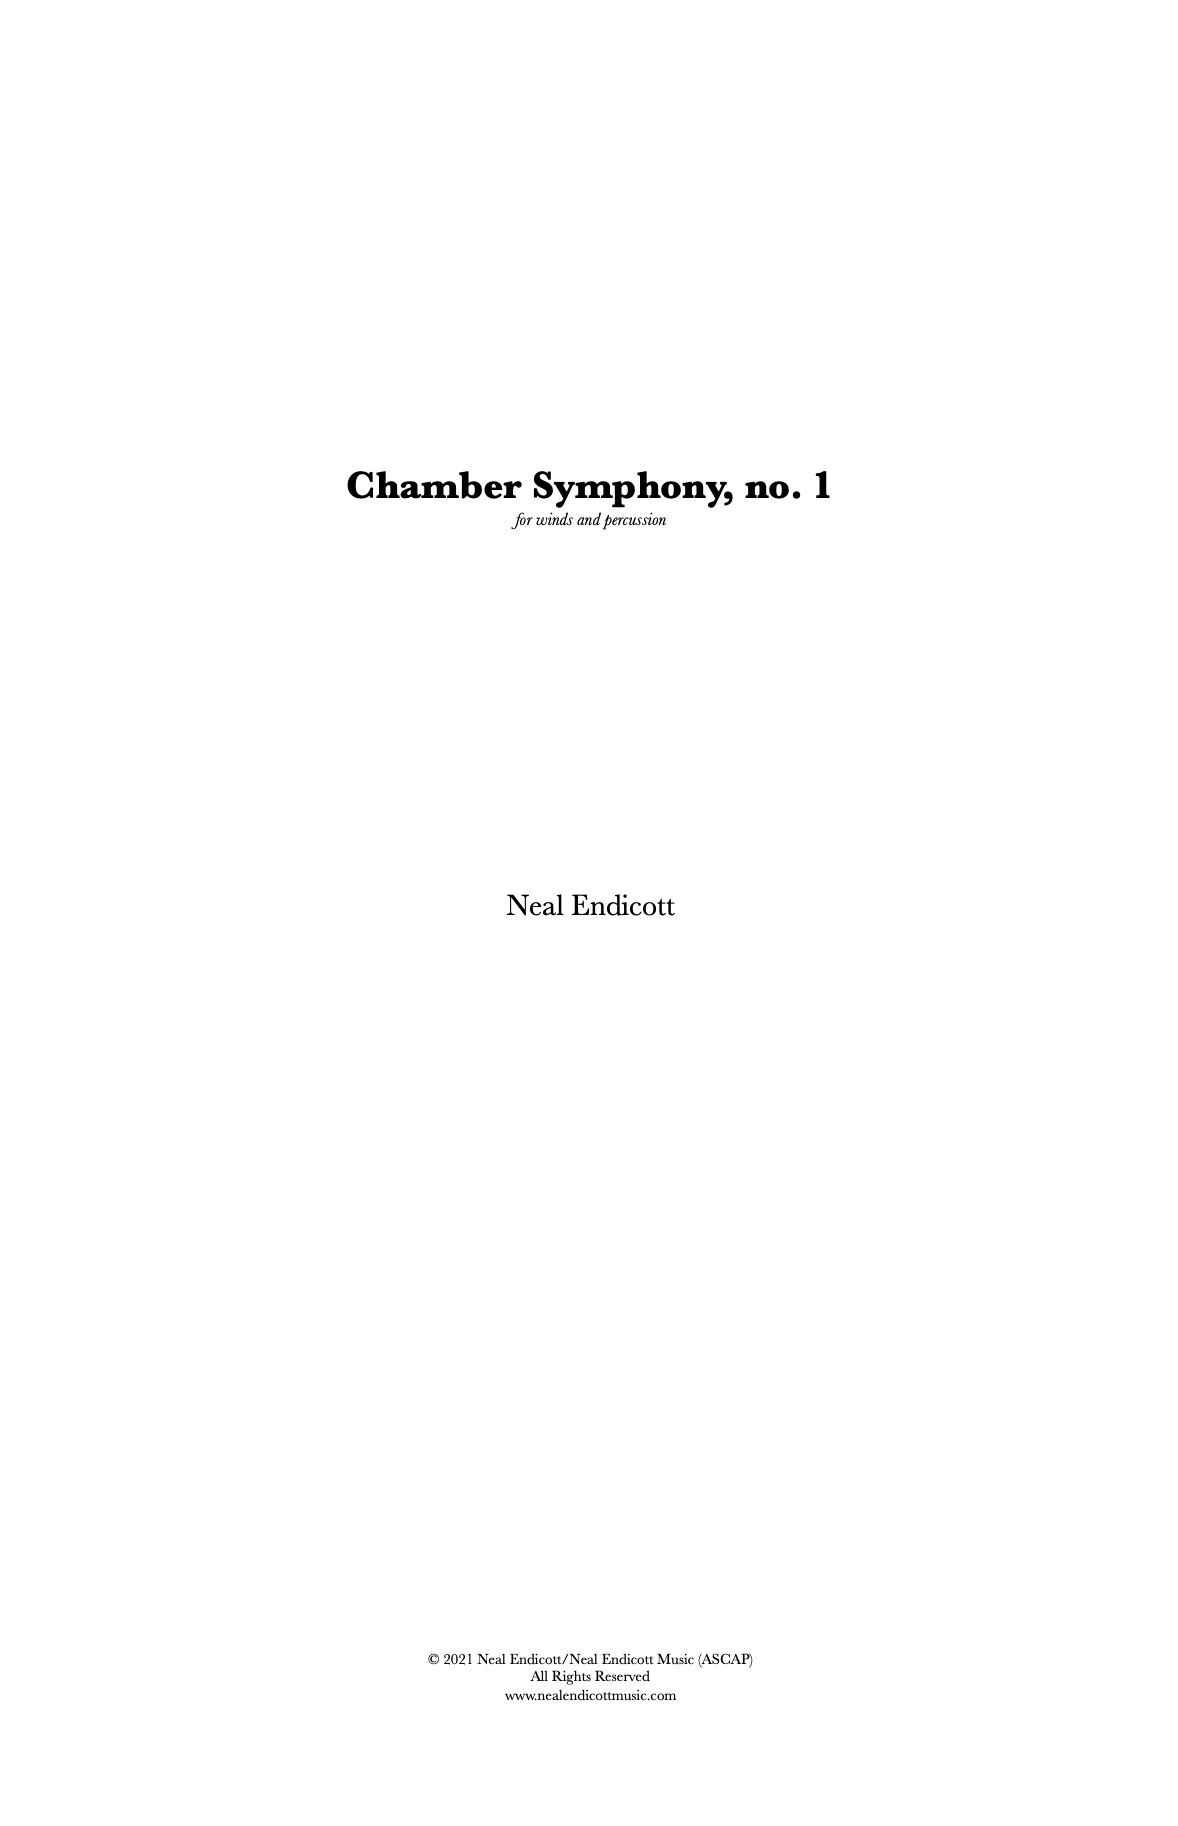 Chamber Symphony No. 1 (Score Only) by Neal Endicott